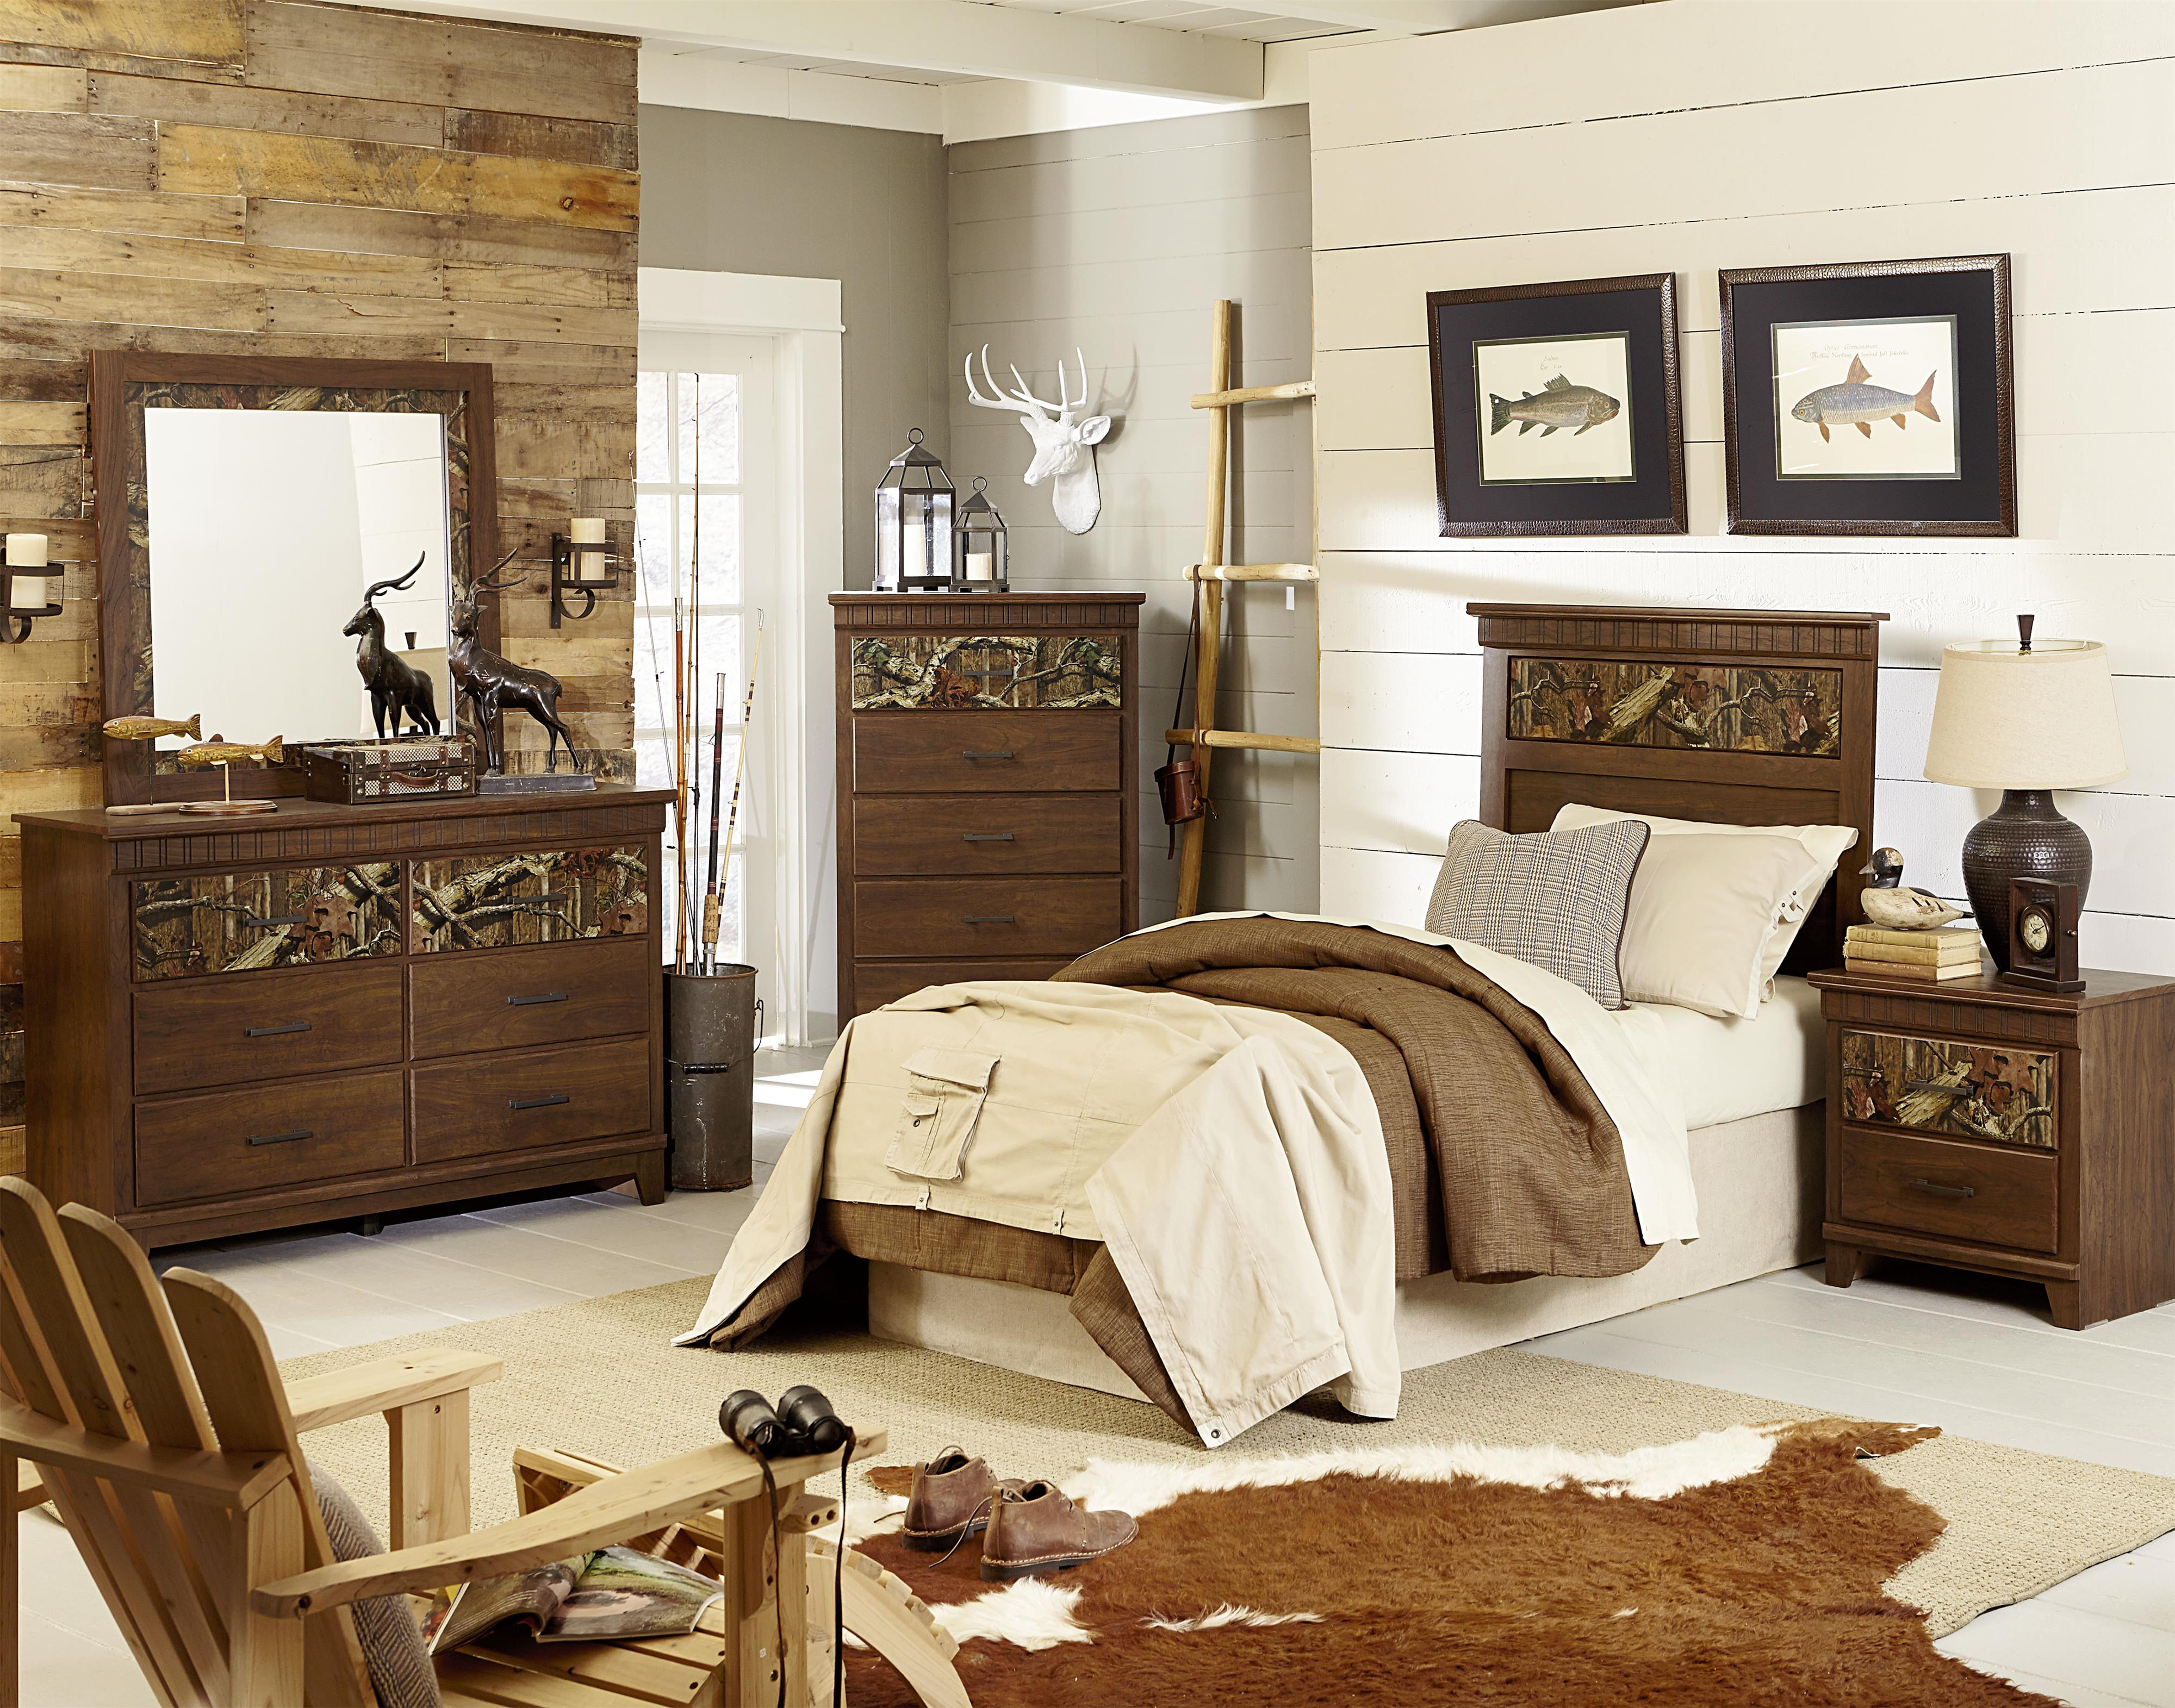 Standard Furniture Solitude Twin Bedroom Group Dunk Bright Furniture Bedroom Group